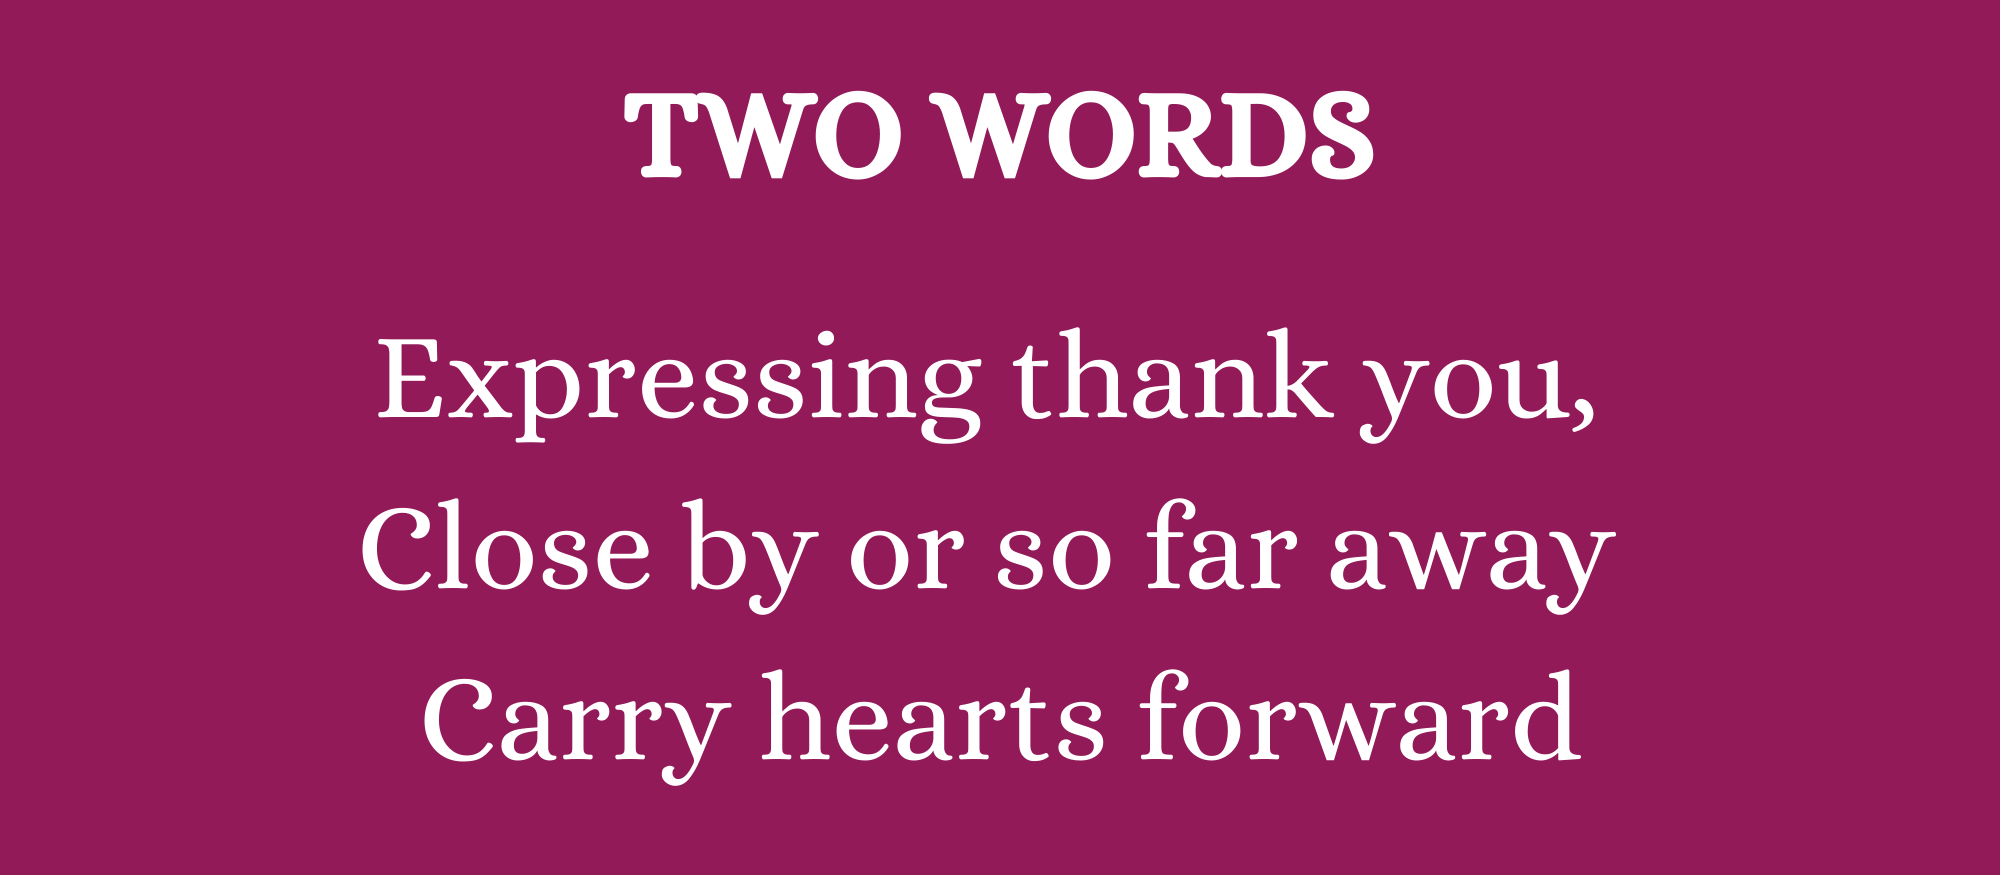 Poem title: TWO WORDS Poem: Expressing thank you / Close by or so far away / Carry hearts forward